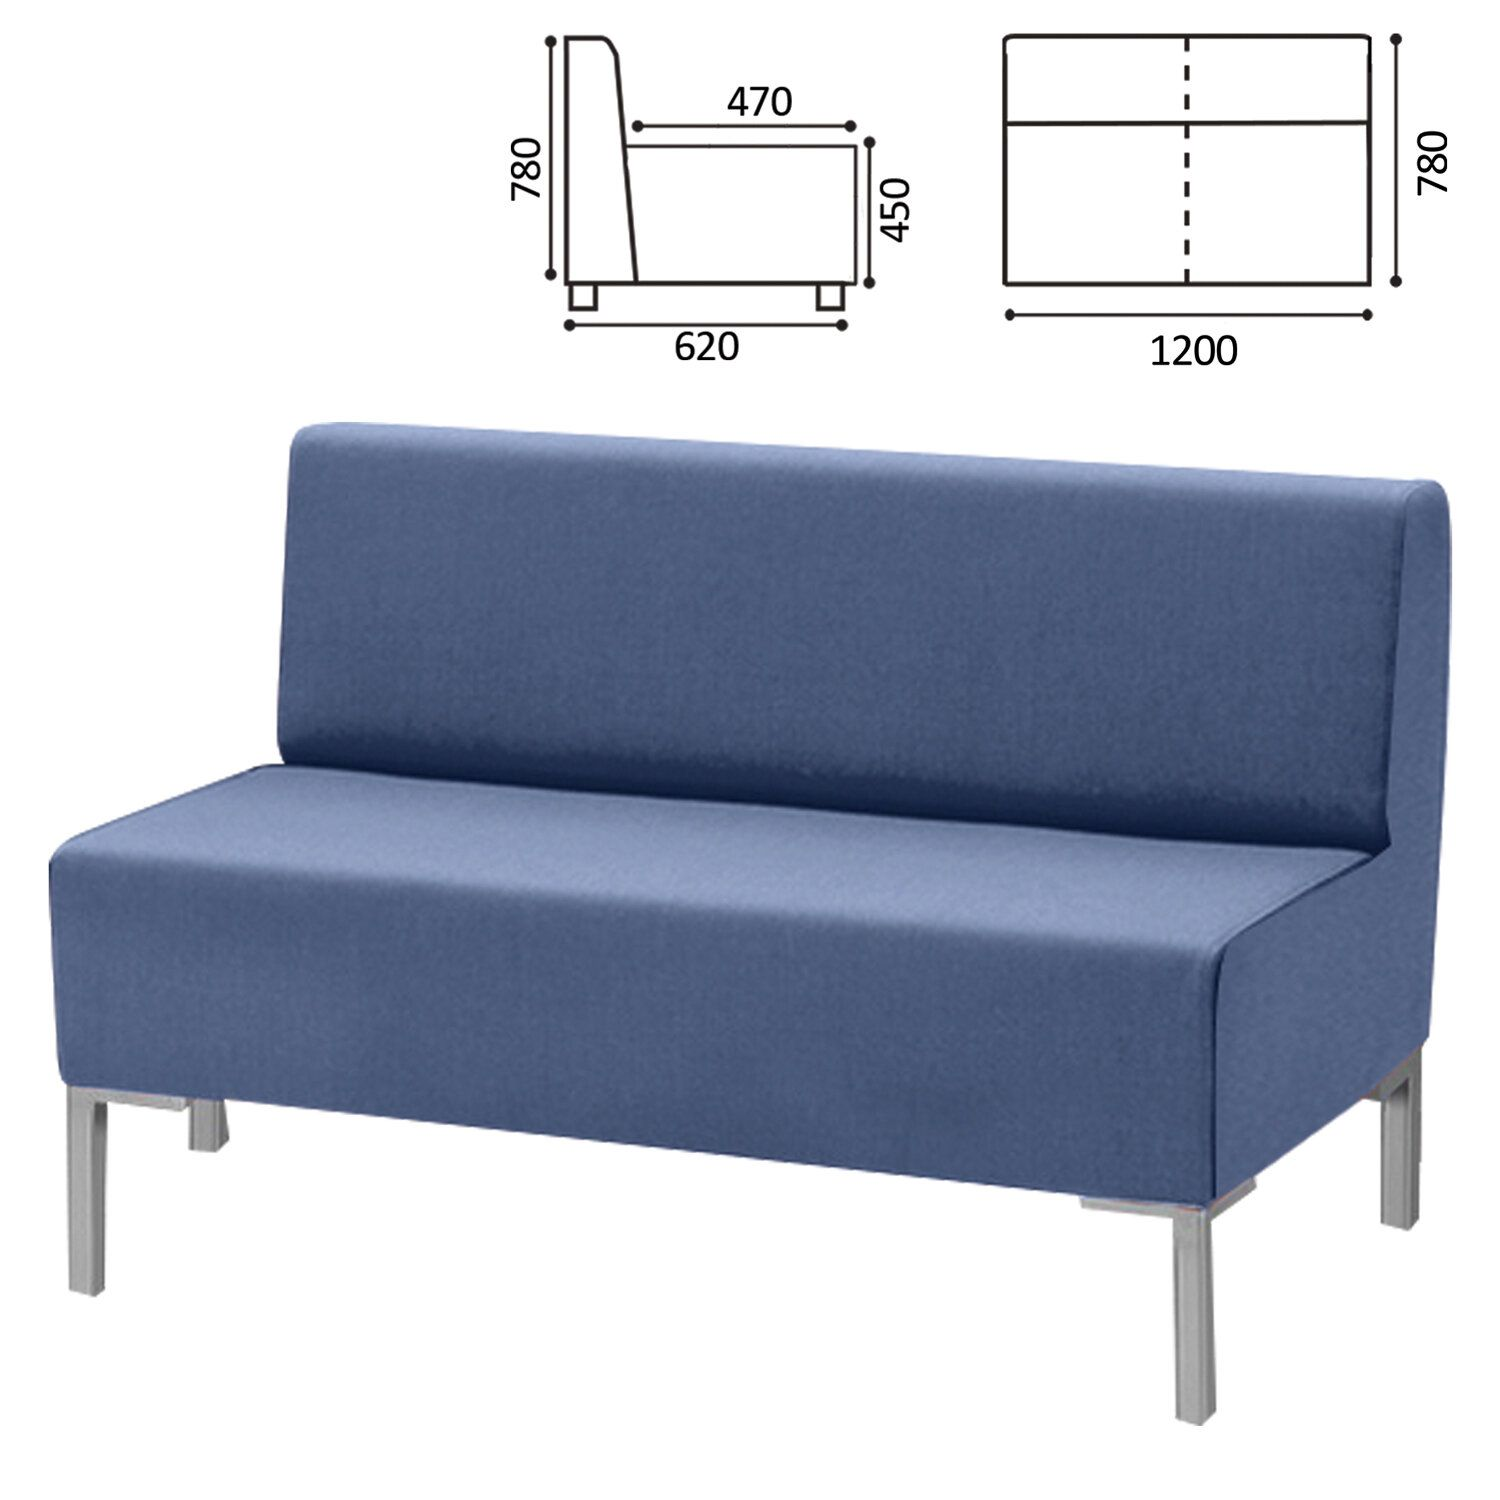 """GARTLEX / Sofa soft double """"Host"""" M-43, 1200x620x780 mm, without armrests, eco-leather, blue"""